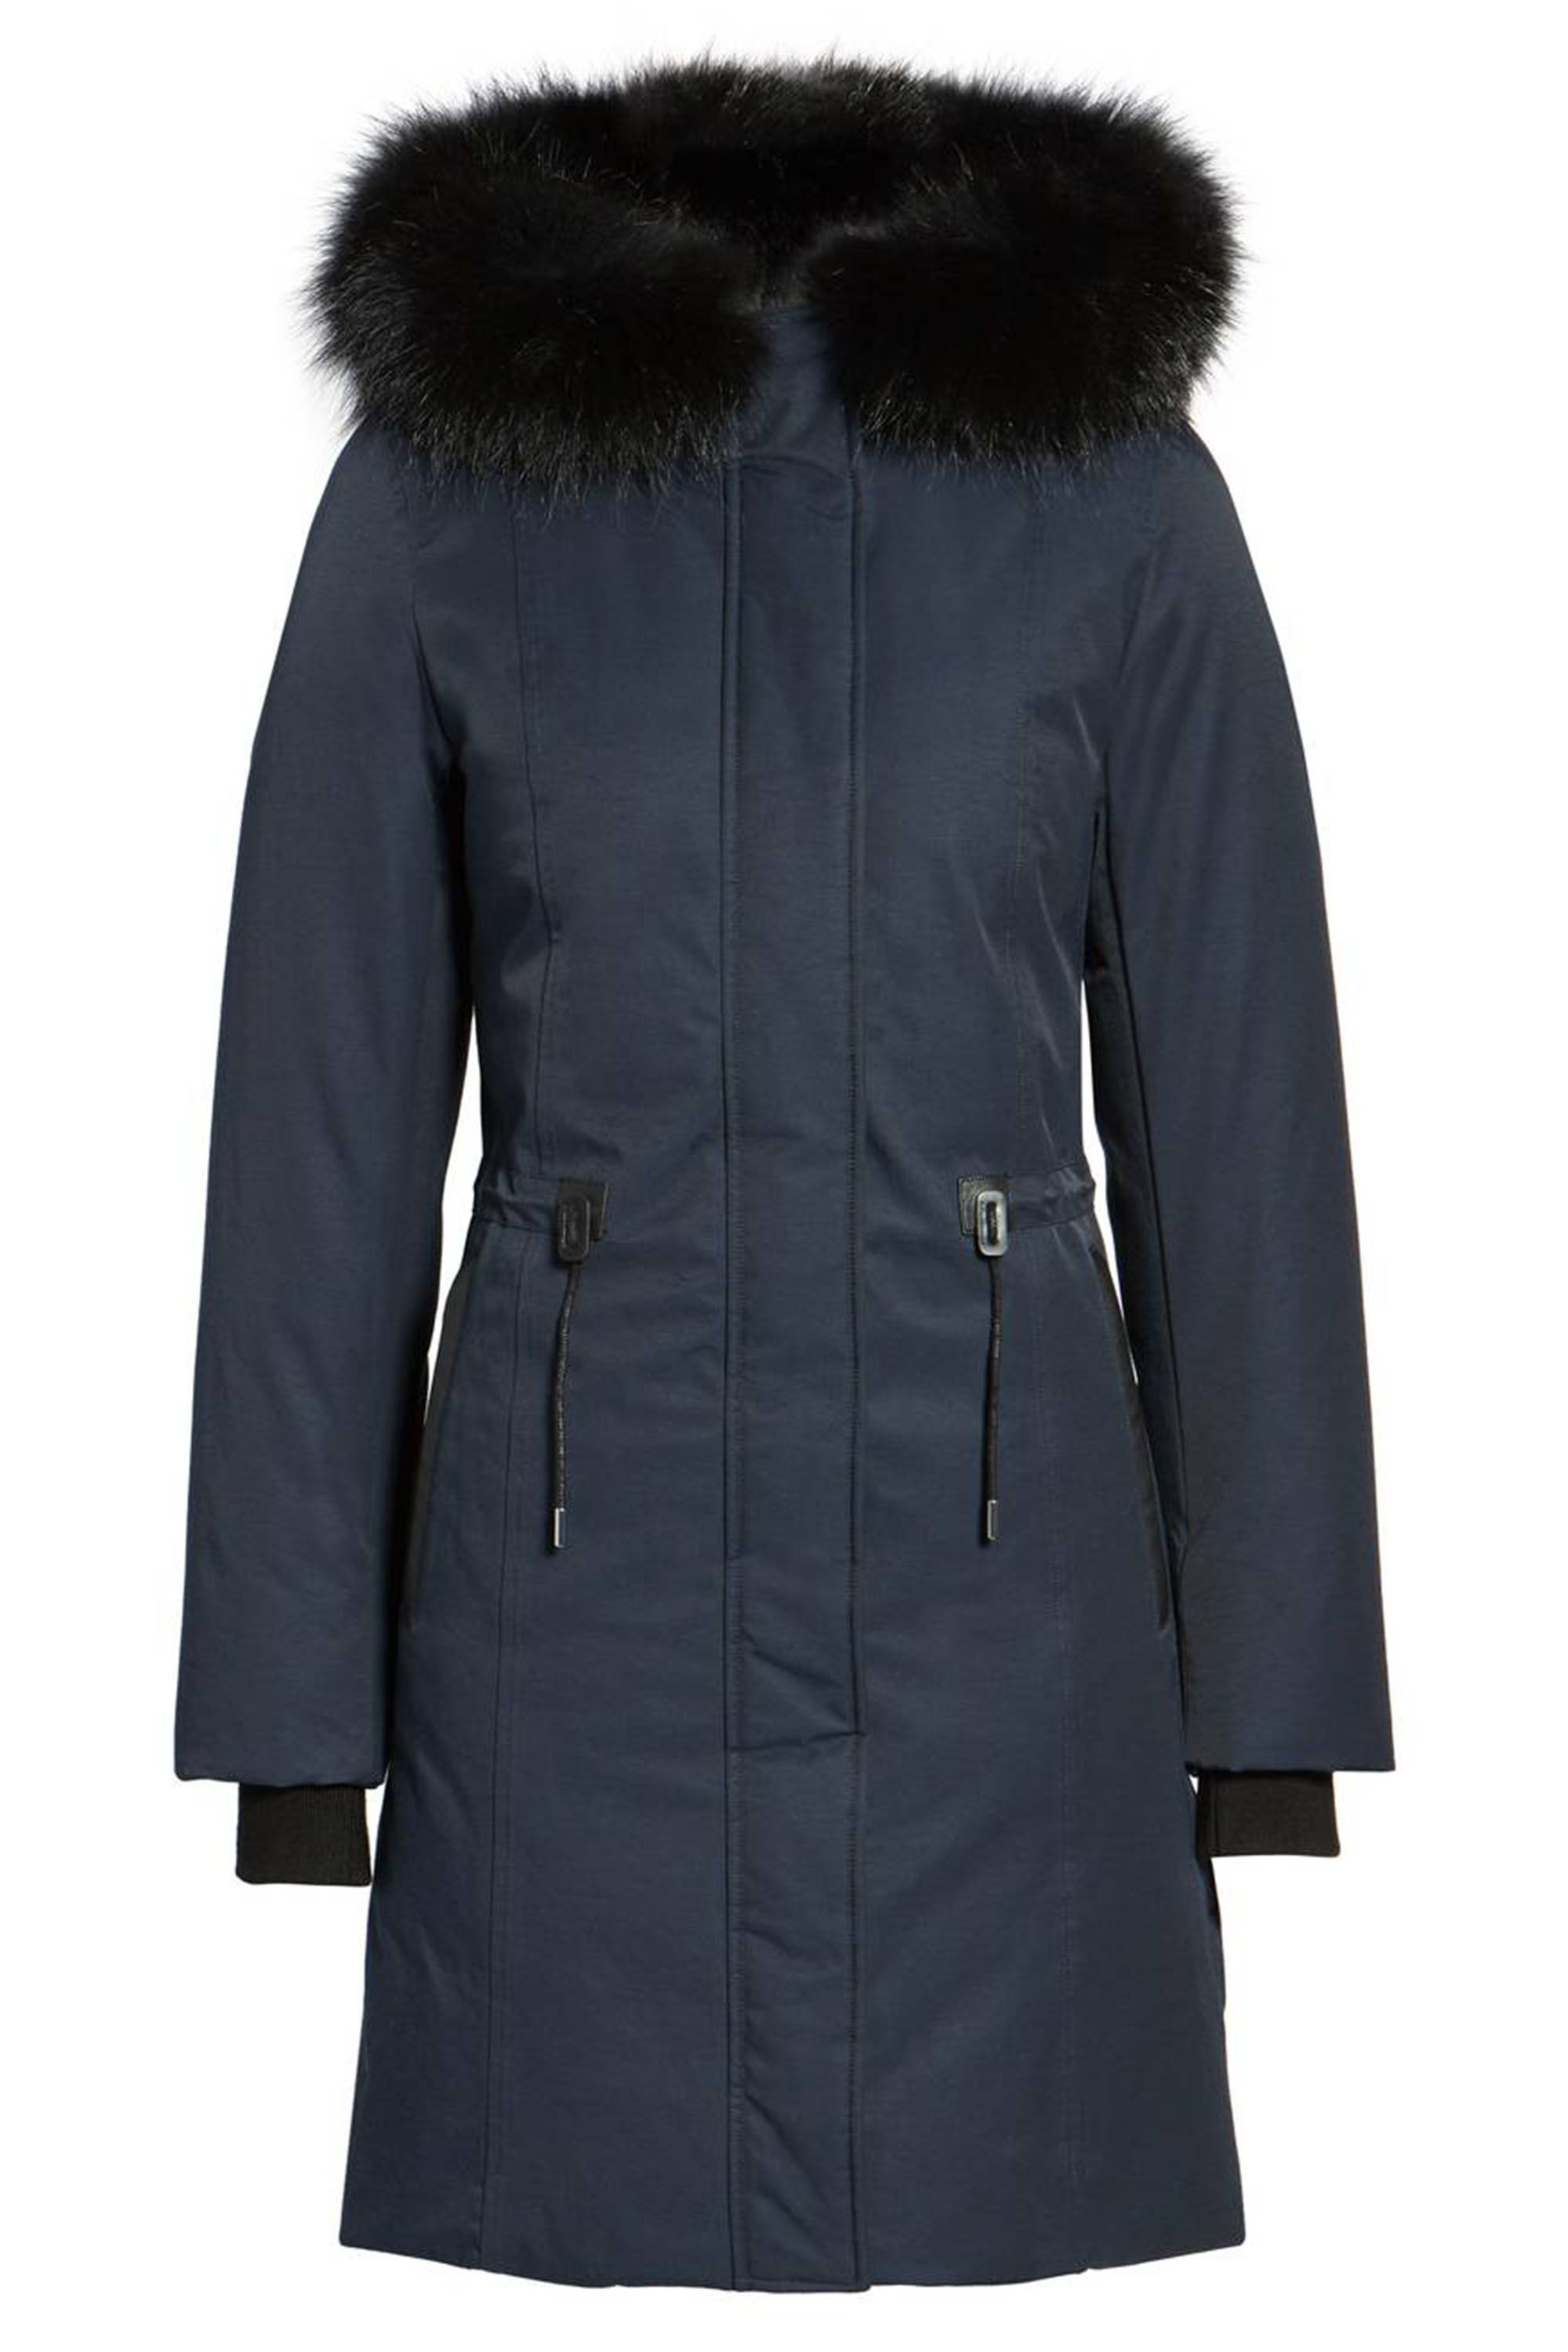 The Warmest Parkas of Winter 2017 - Best Winter Coats